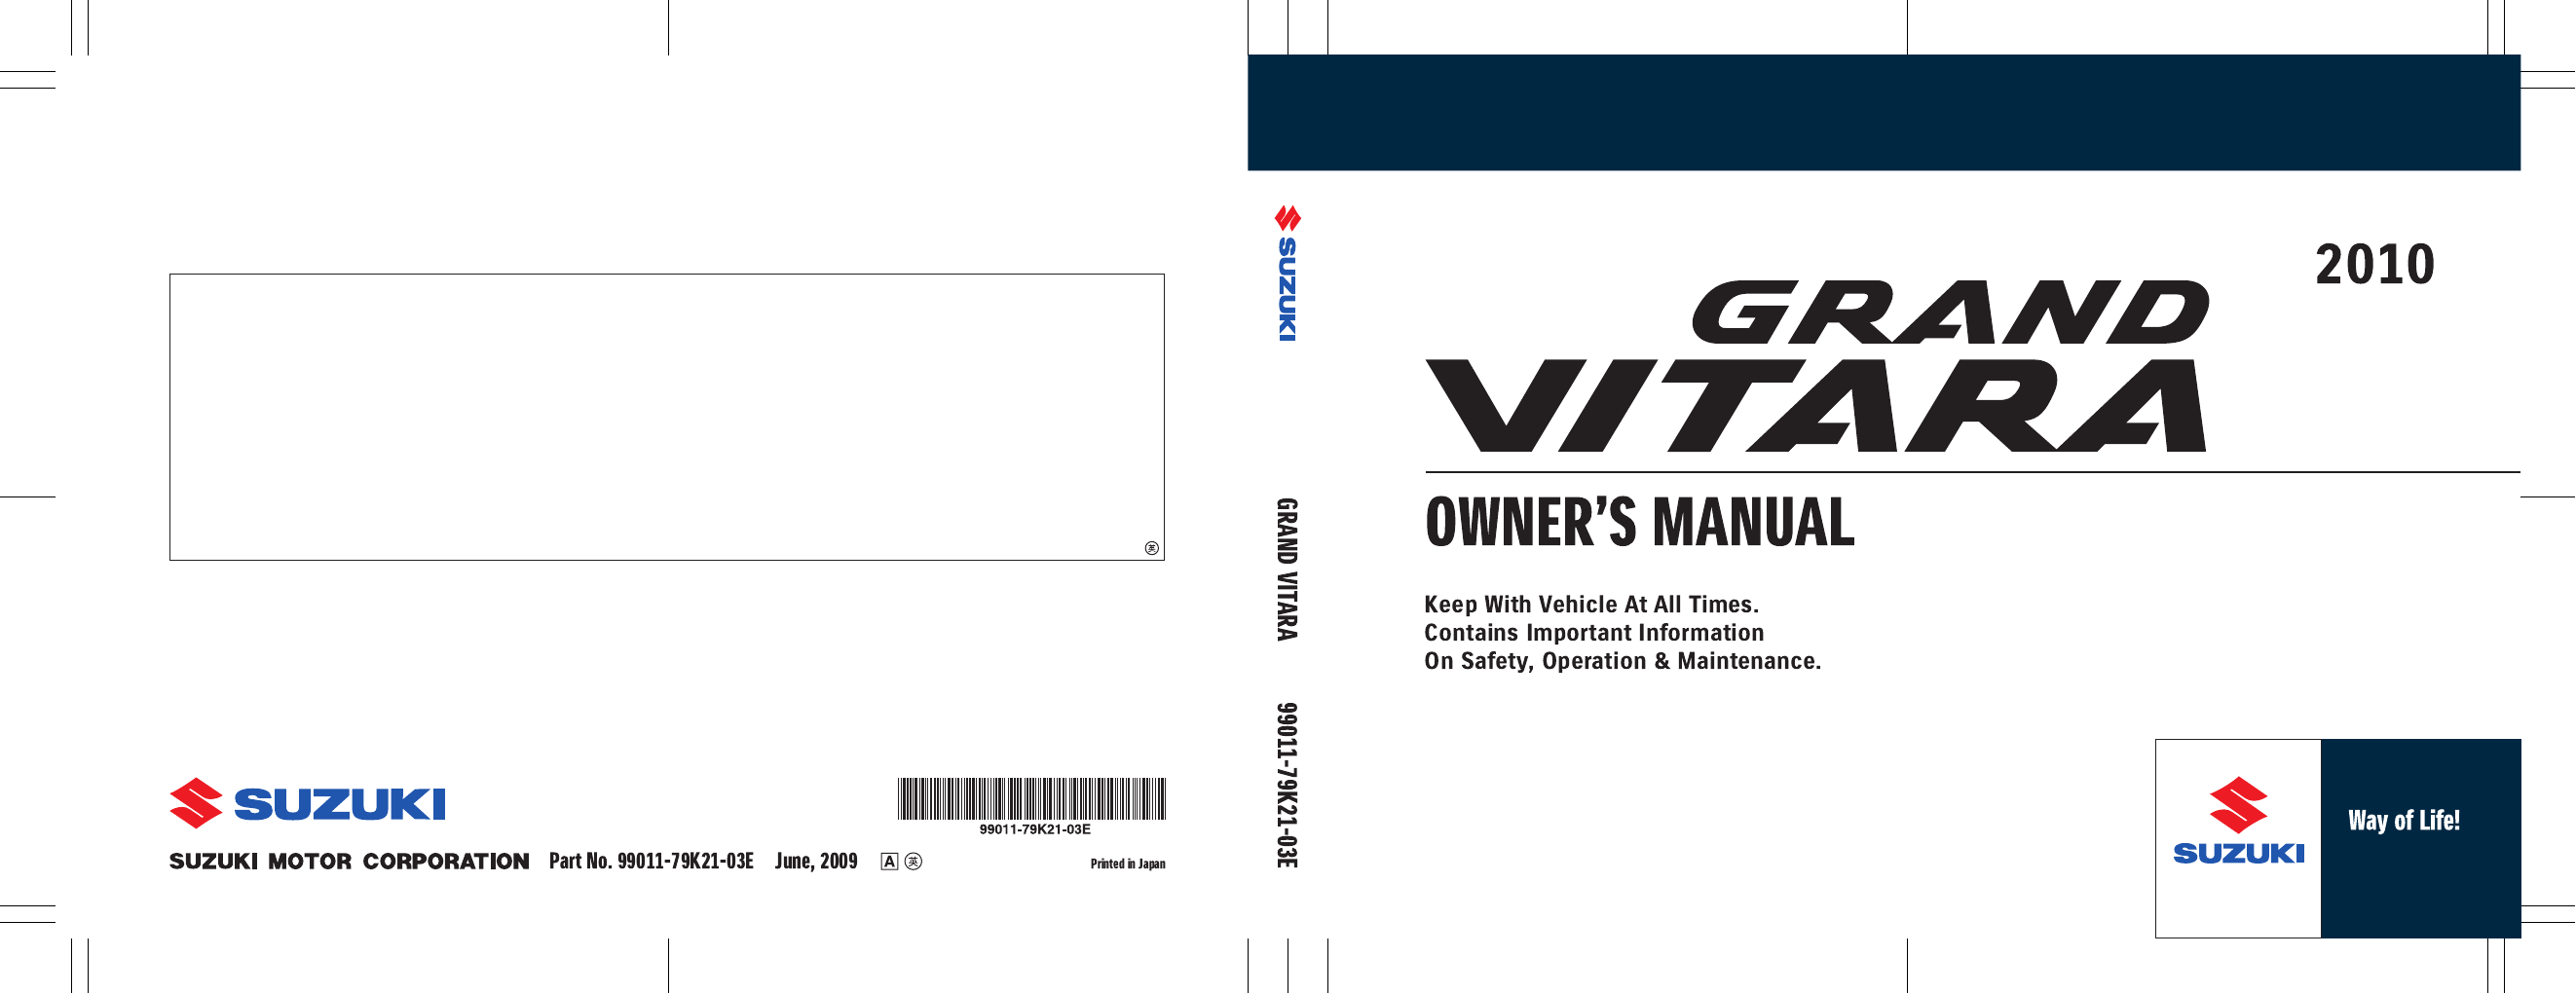 2010 suzuki grand vitara owners manual pdf rh manuals co 2010 suzuki grand vitara owners manual pdf 2010 suzuki grand vitara owners manual pdf